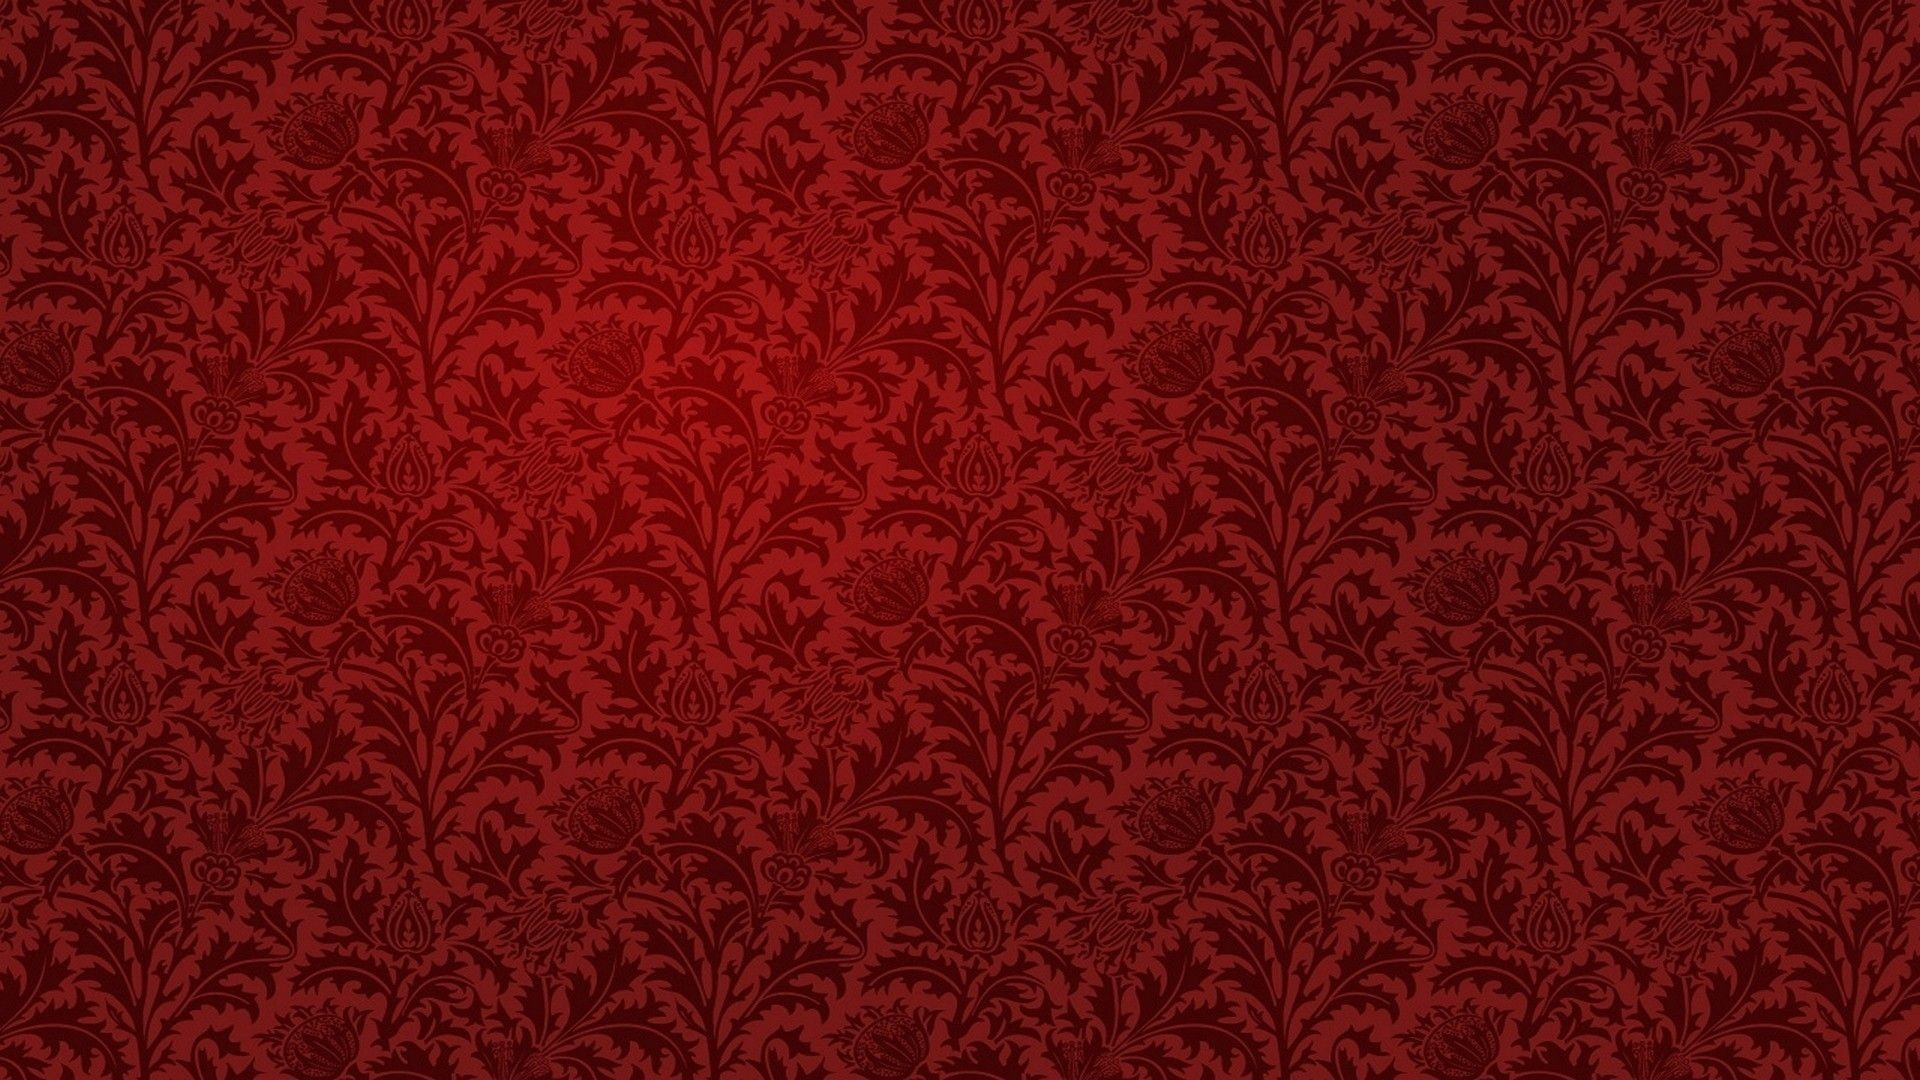 Vintage background download free awesome wallpapers for - Hd pattern wallpapers 1080p ...